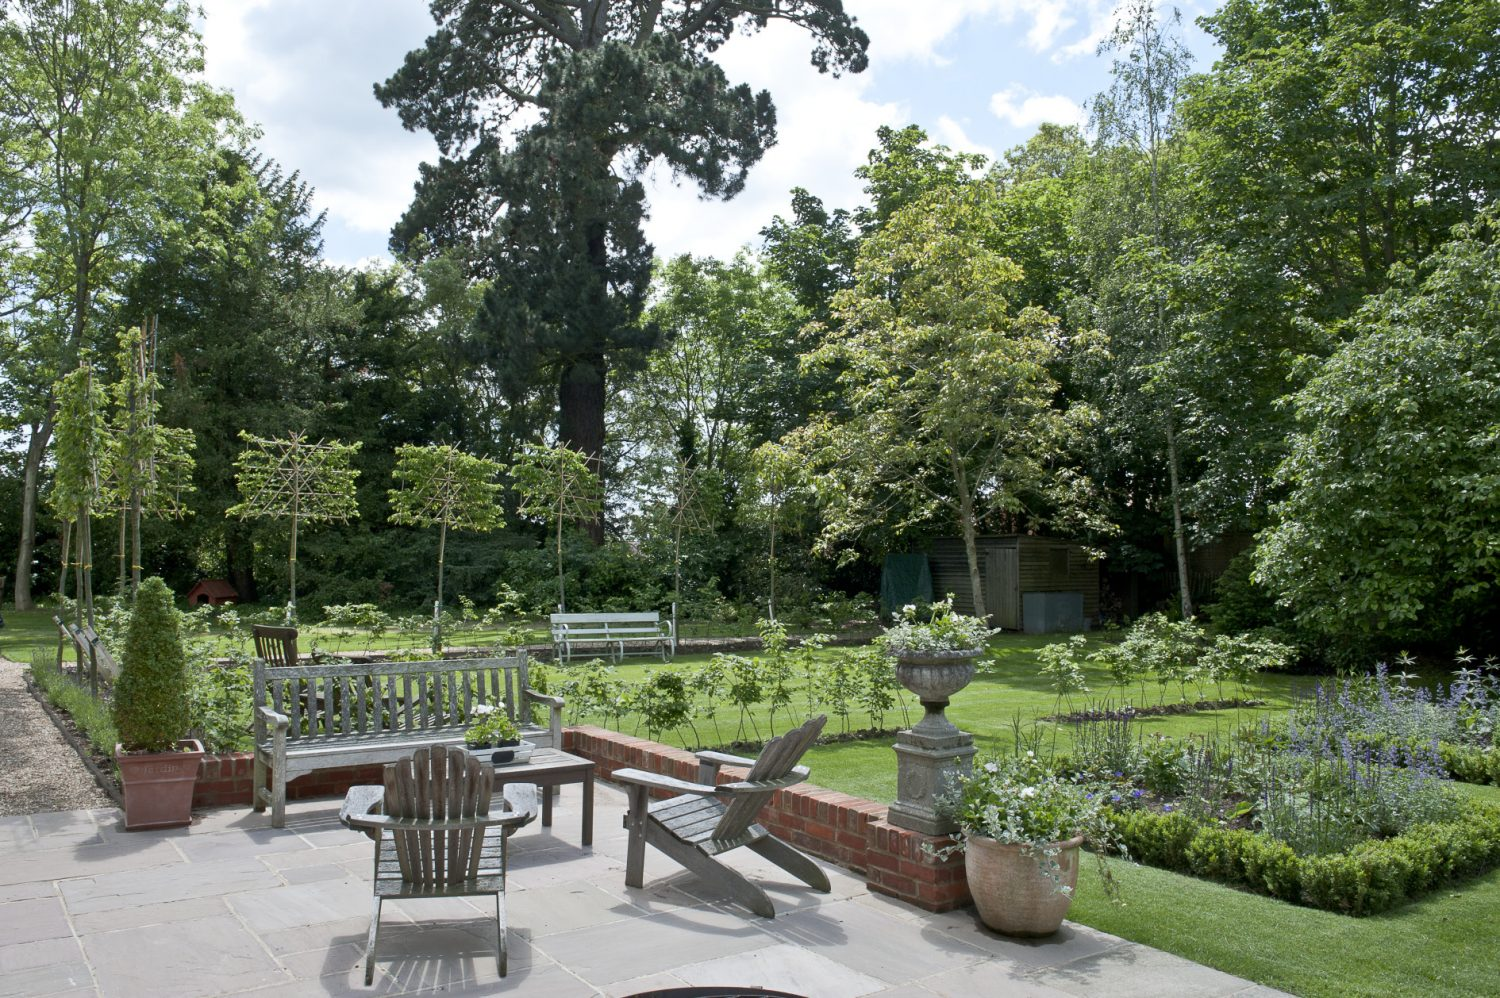 Jo Thompson, a Chelsea gold-medallist, has re-designed the garden for Belinda. Jo's design includes a parterre leading off the terrace, the original of which has been extended to provide a larger seating area